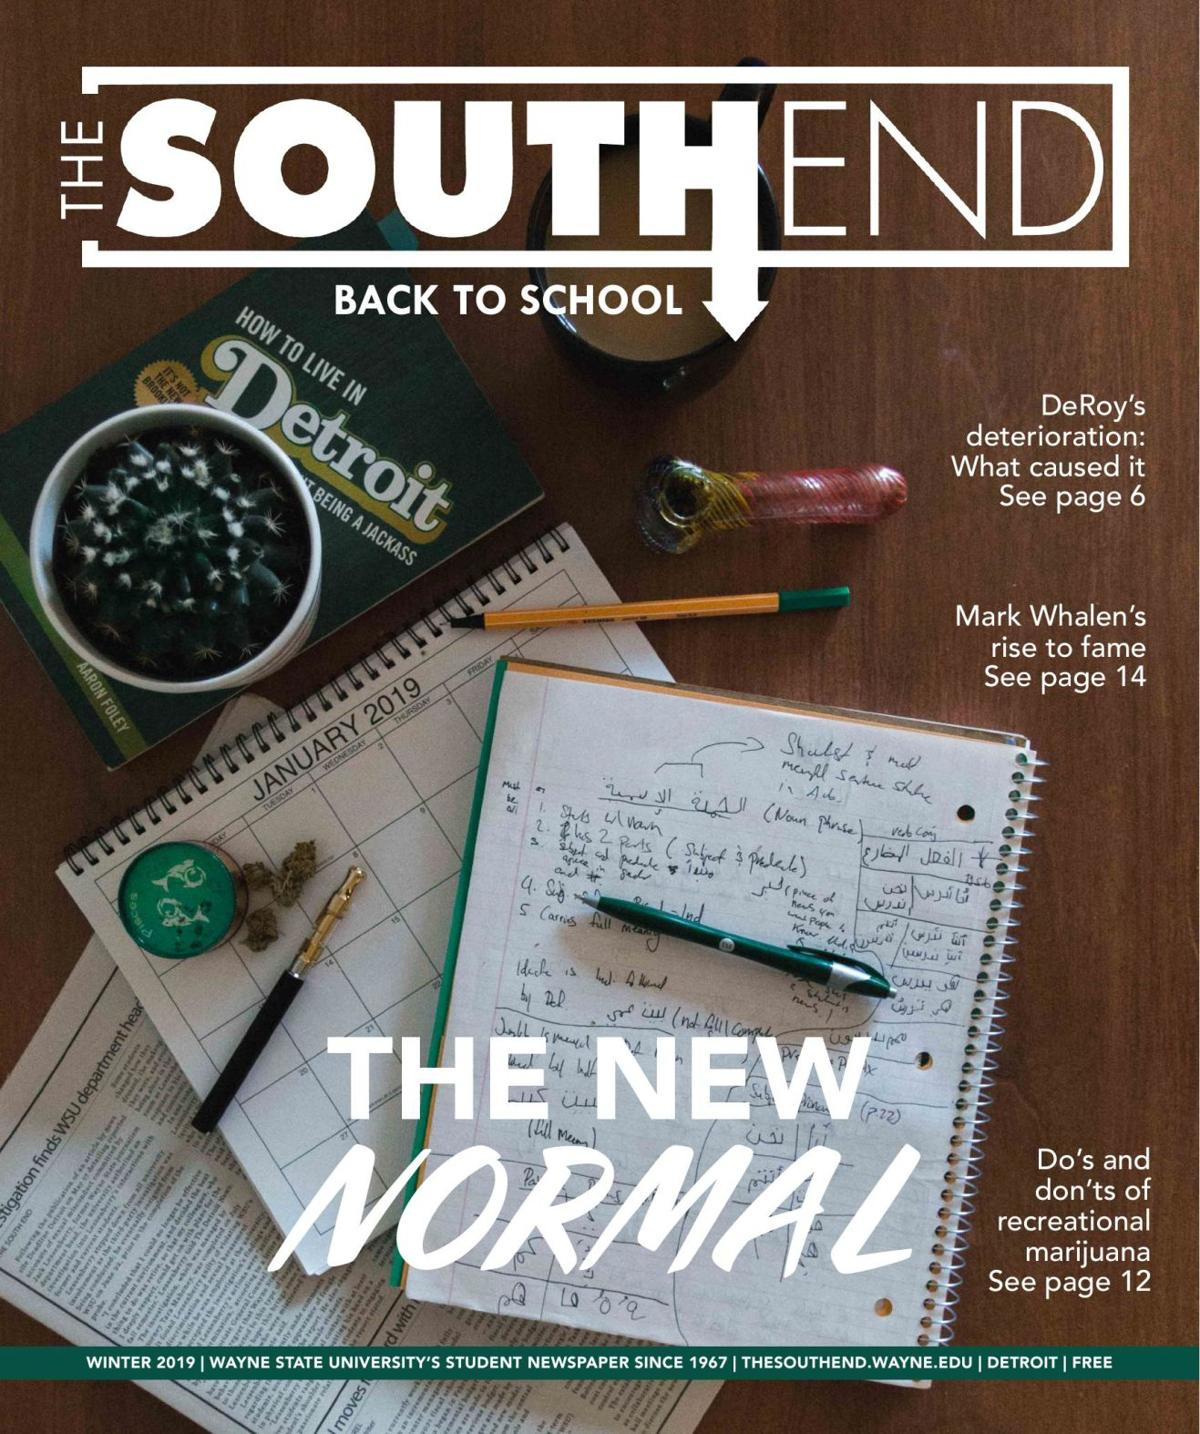 Winter 2019 Back to School Print Edition